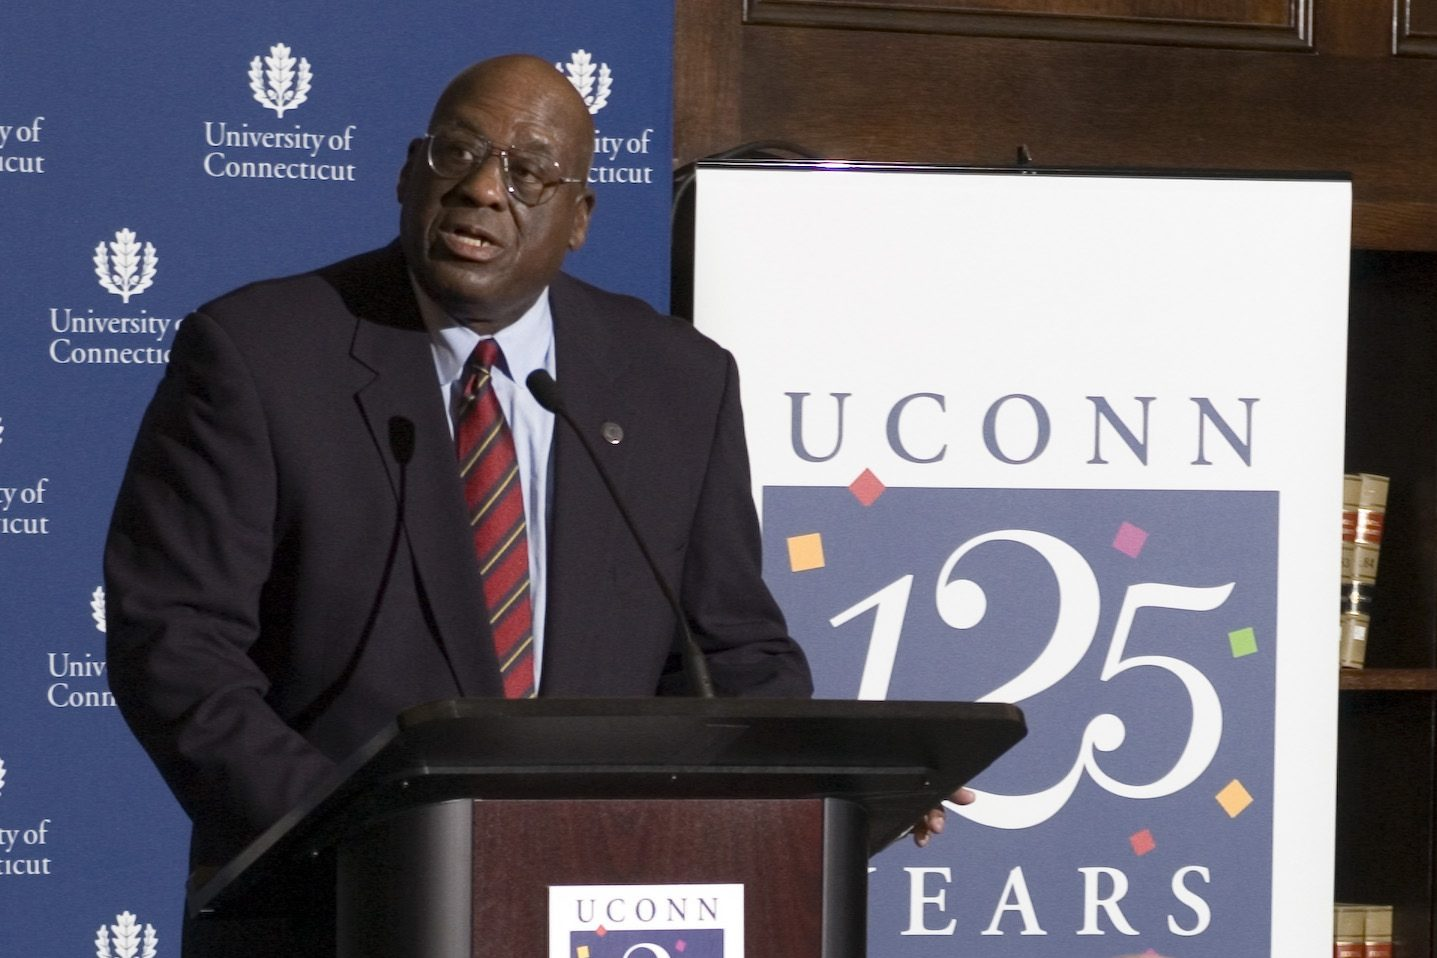 Alfred Rogers '53 (CLAS), '63 JD, speaks on campus as part of the 125th Anniversary celebrations in 2006. (UConn File Photo)